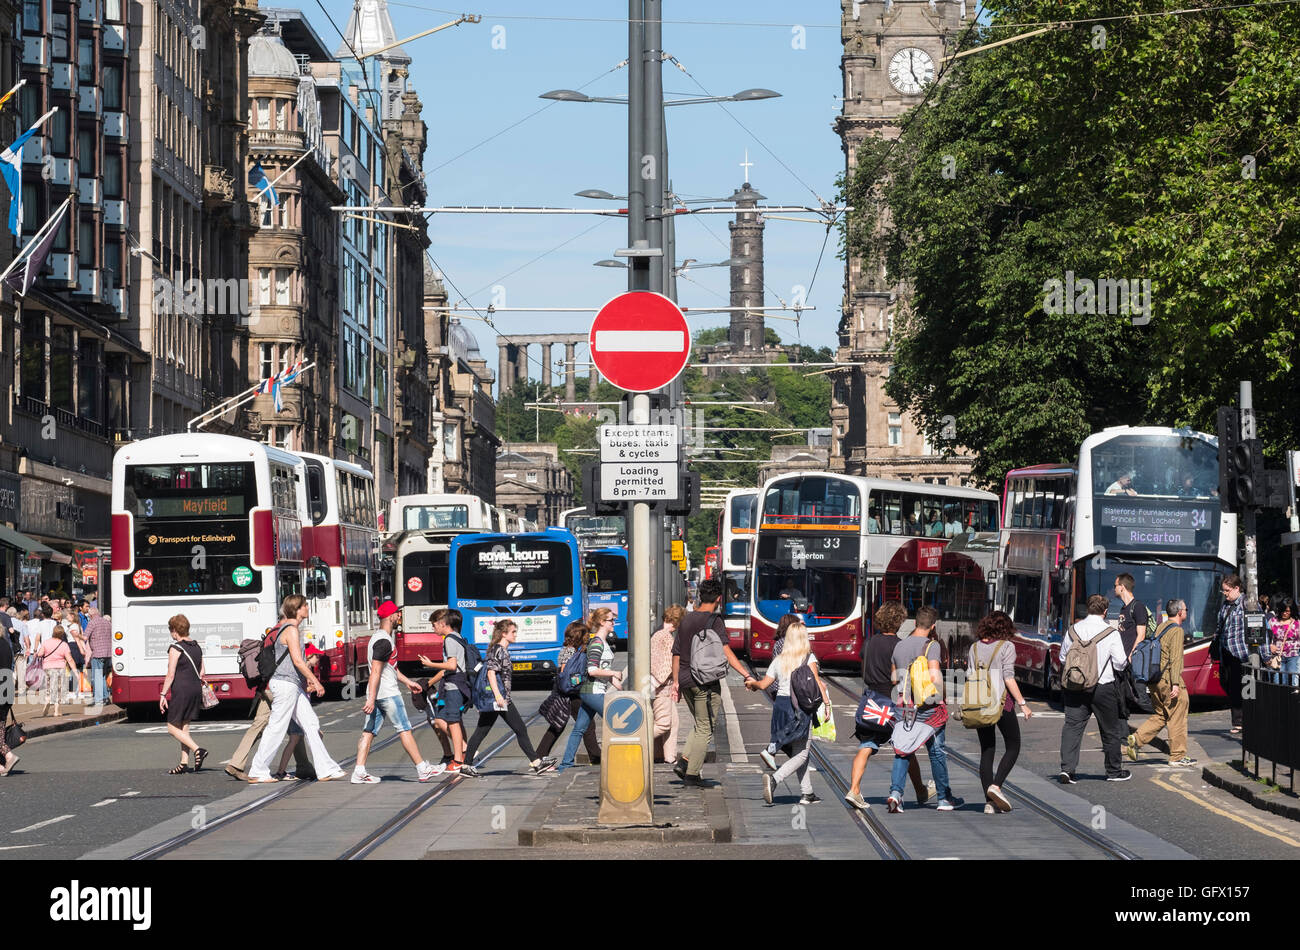 View of pedestrians crossing street and many pubic buses on Princes Street in Edinburgh , Scotland, United Kingdom - Stock Image